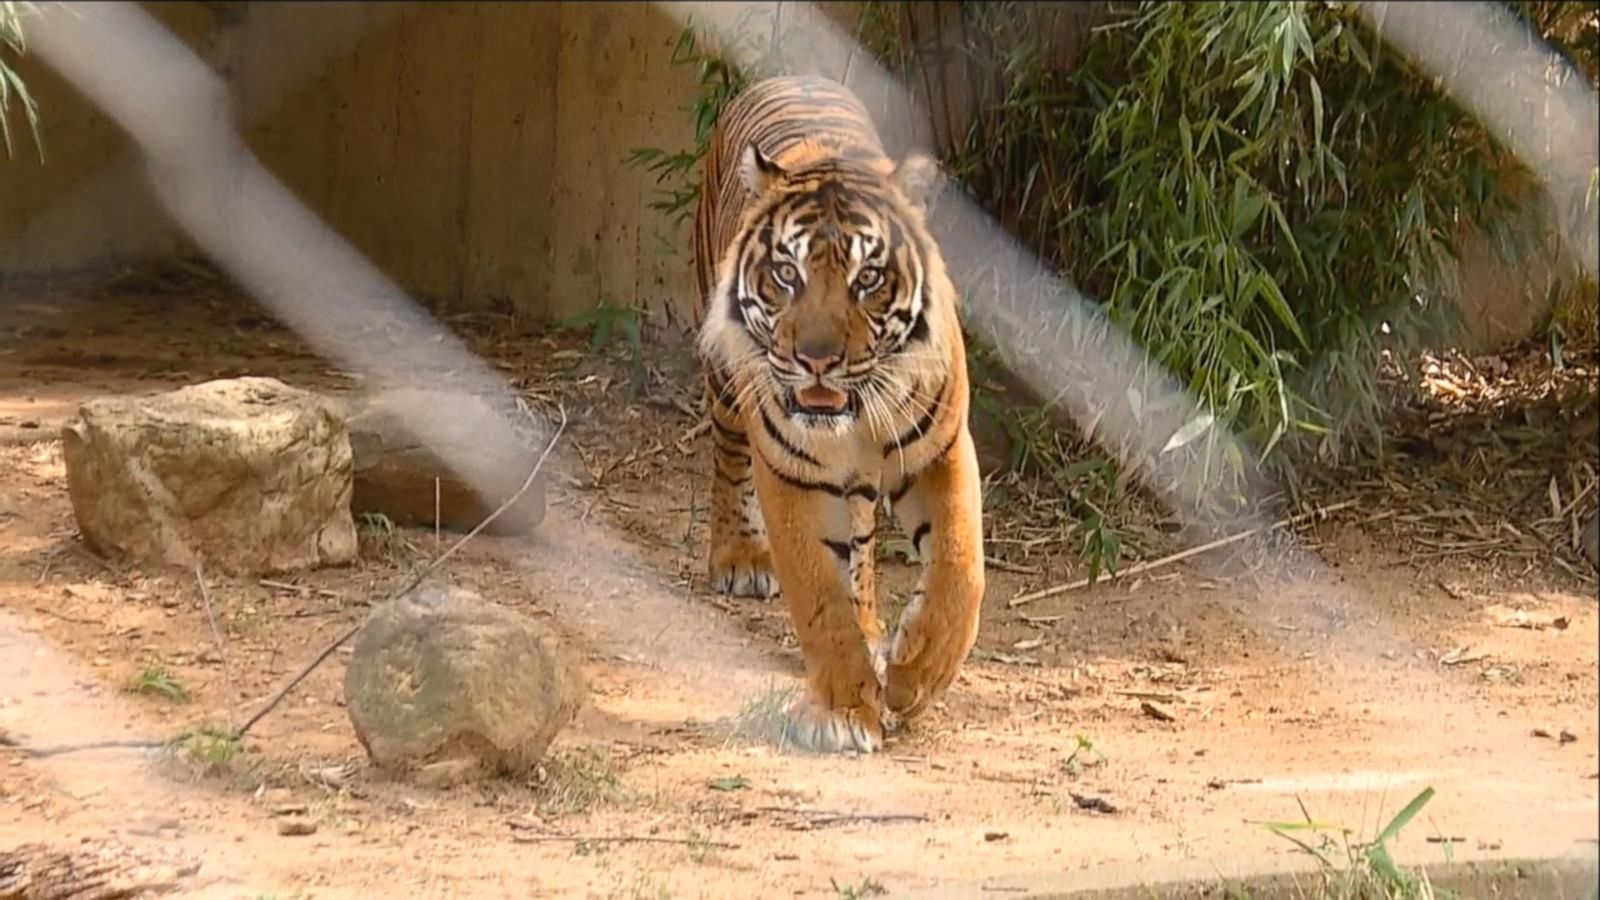 VIDEO: Meet Sparky the Tiger at the National Zoo